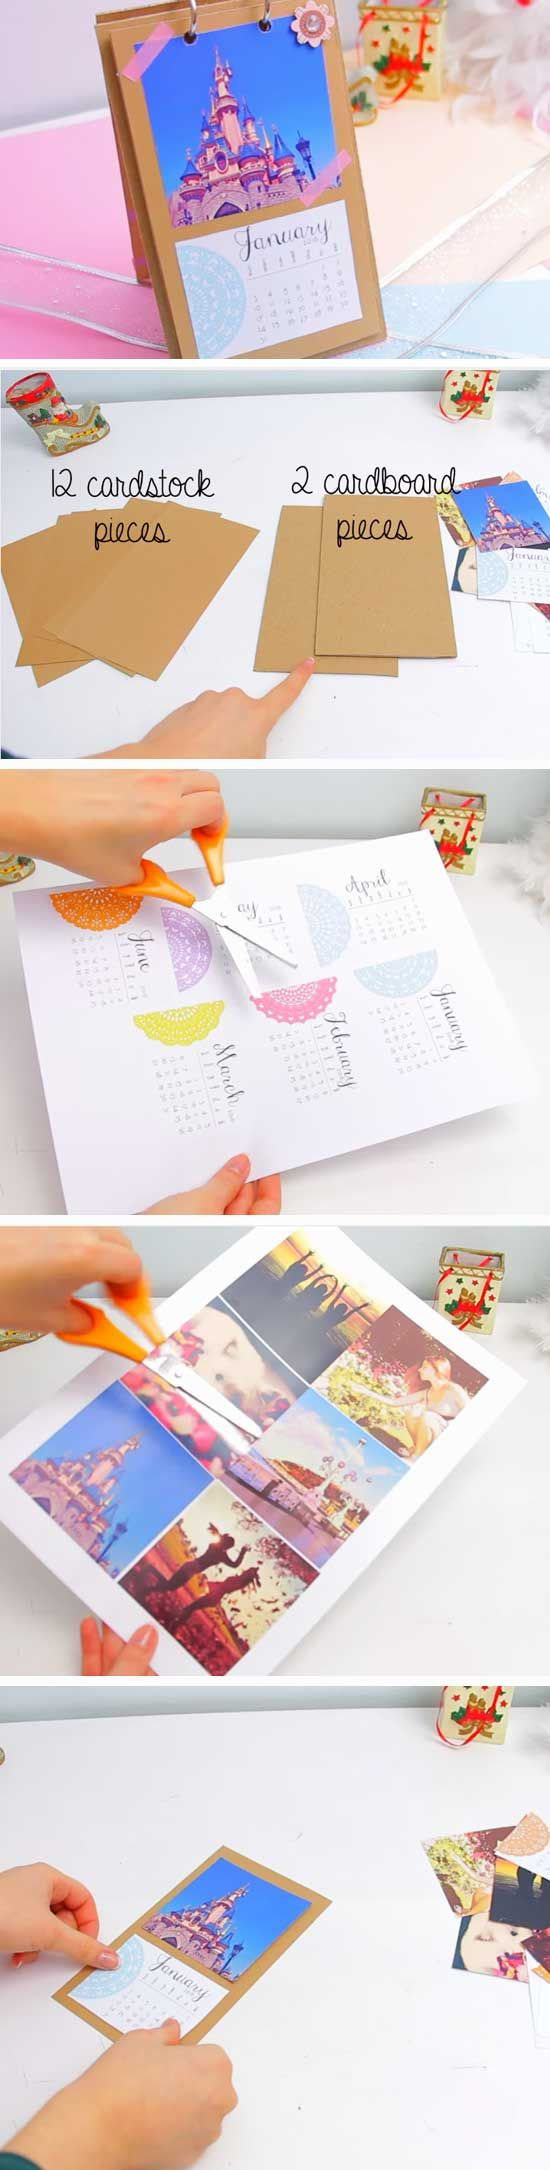 25 best ideas about last minute birthday gifts on for Easy last minute christmas gifts to make